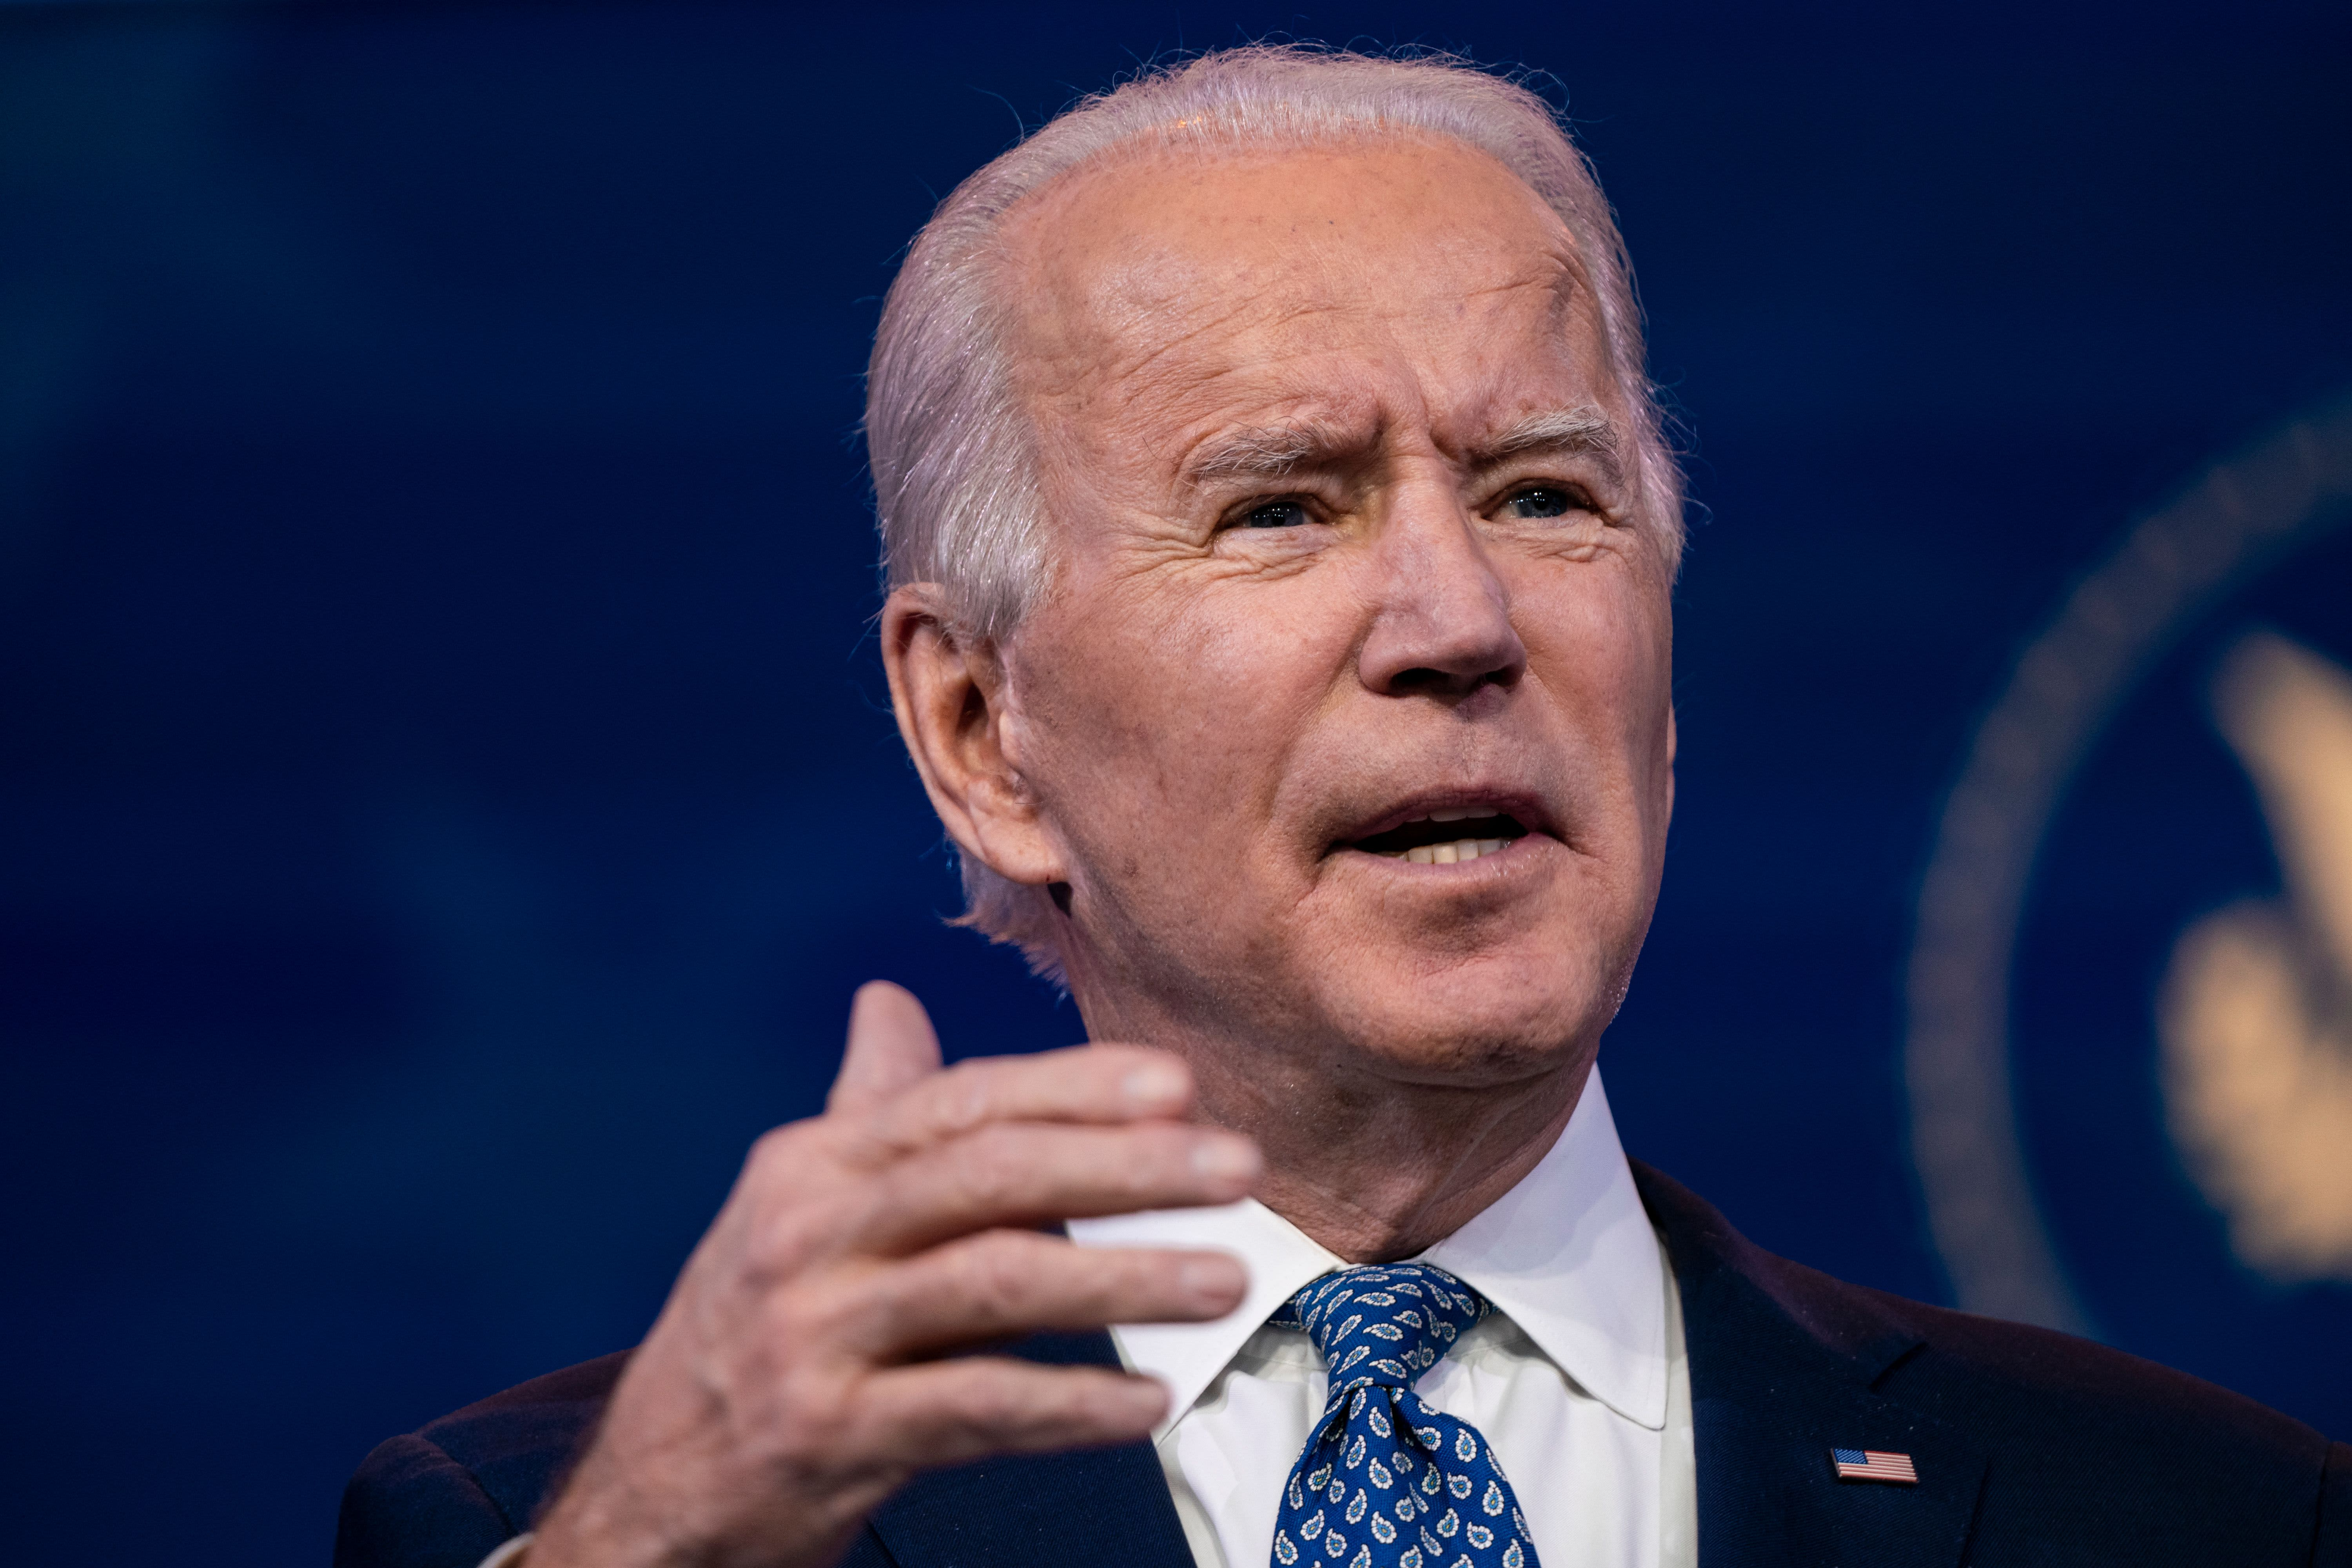 Biden slams Trump's vaccine effort reiterates plan to administer 100 million doses in 100 days – CNBC